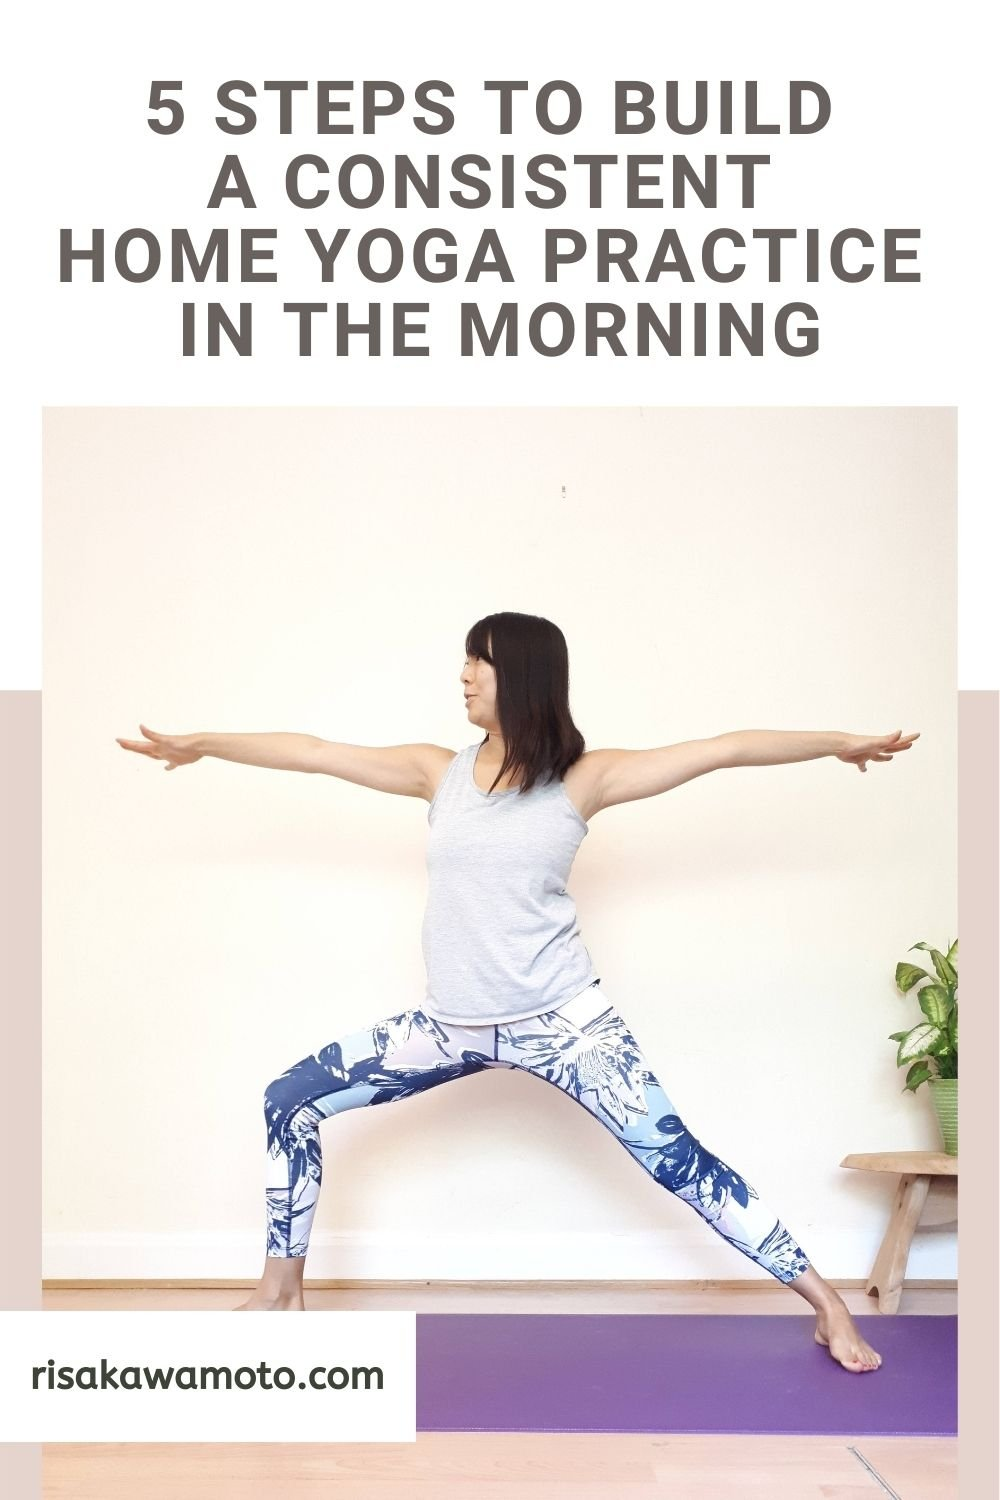 How to Build a Consistent Home Yoga Practice in the Morning